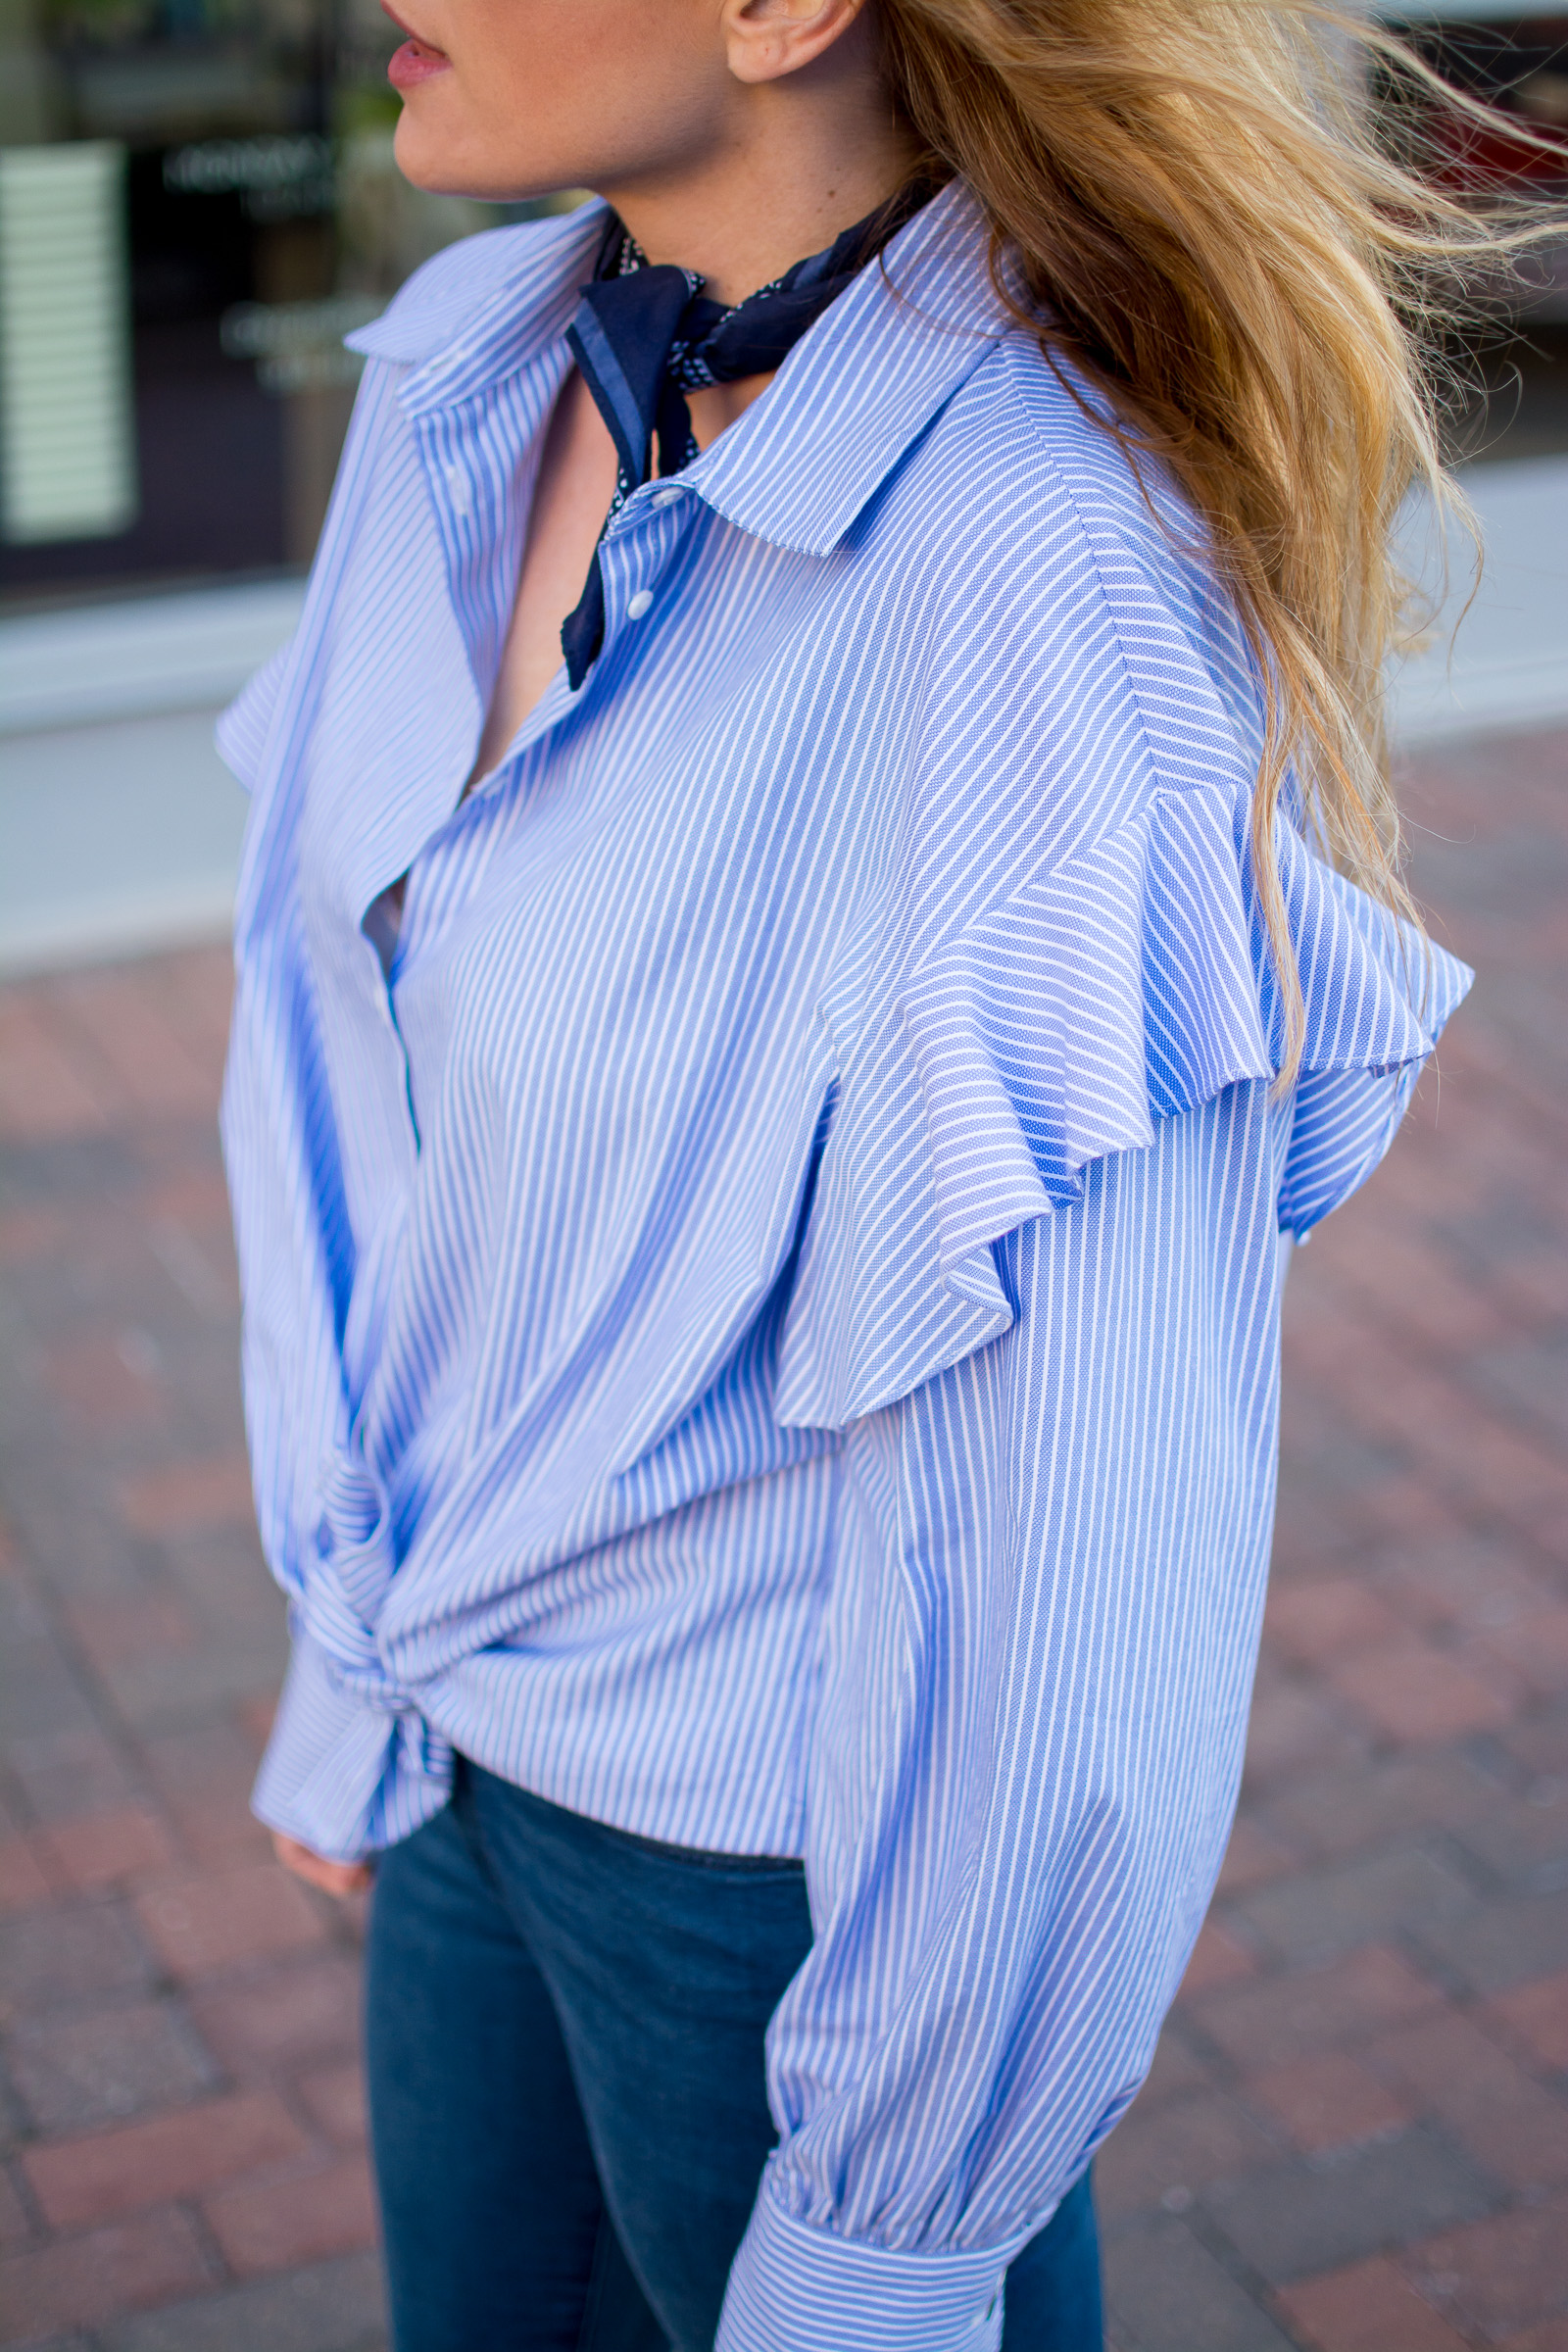 Oversized Blue Striped Shirt with Mega Ruffles. | Ashley from Le Stylo Rouge